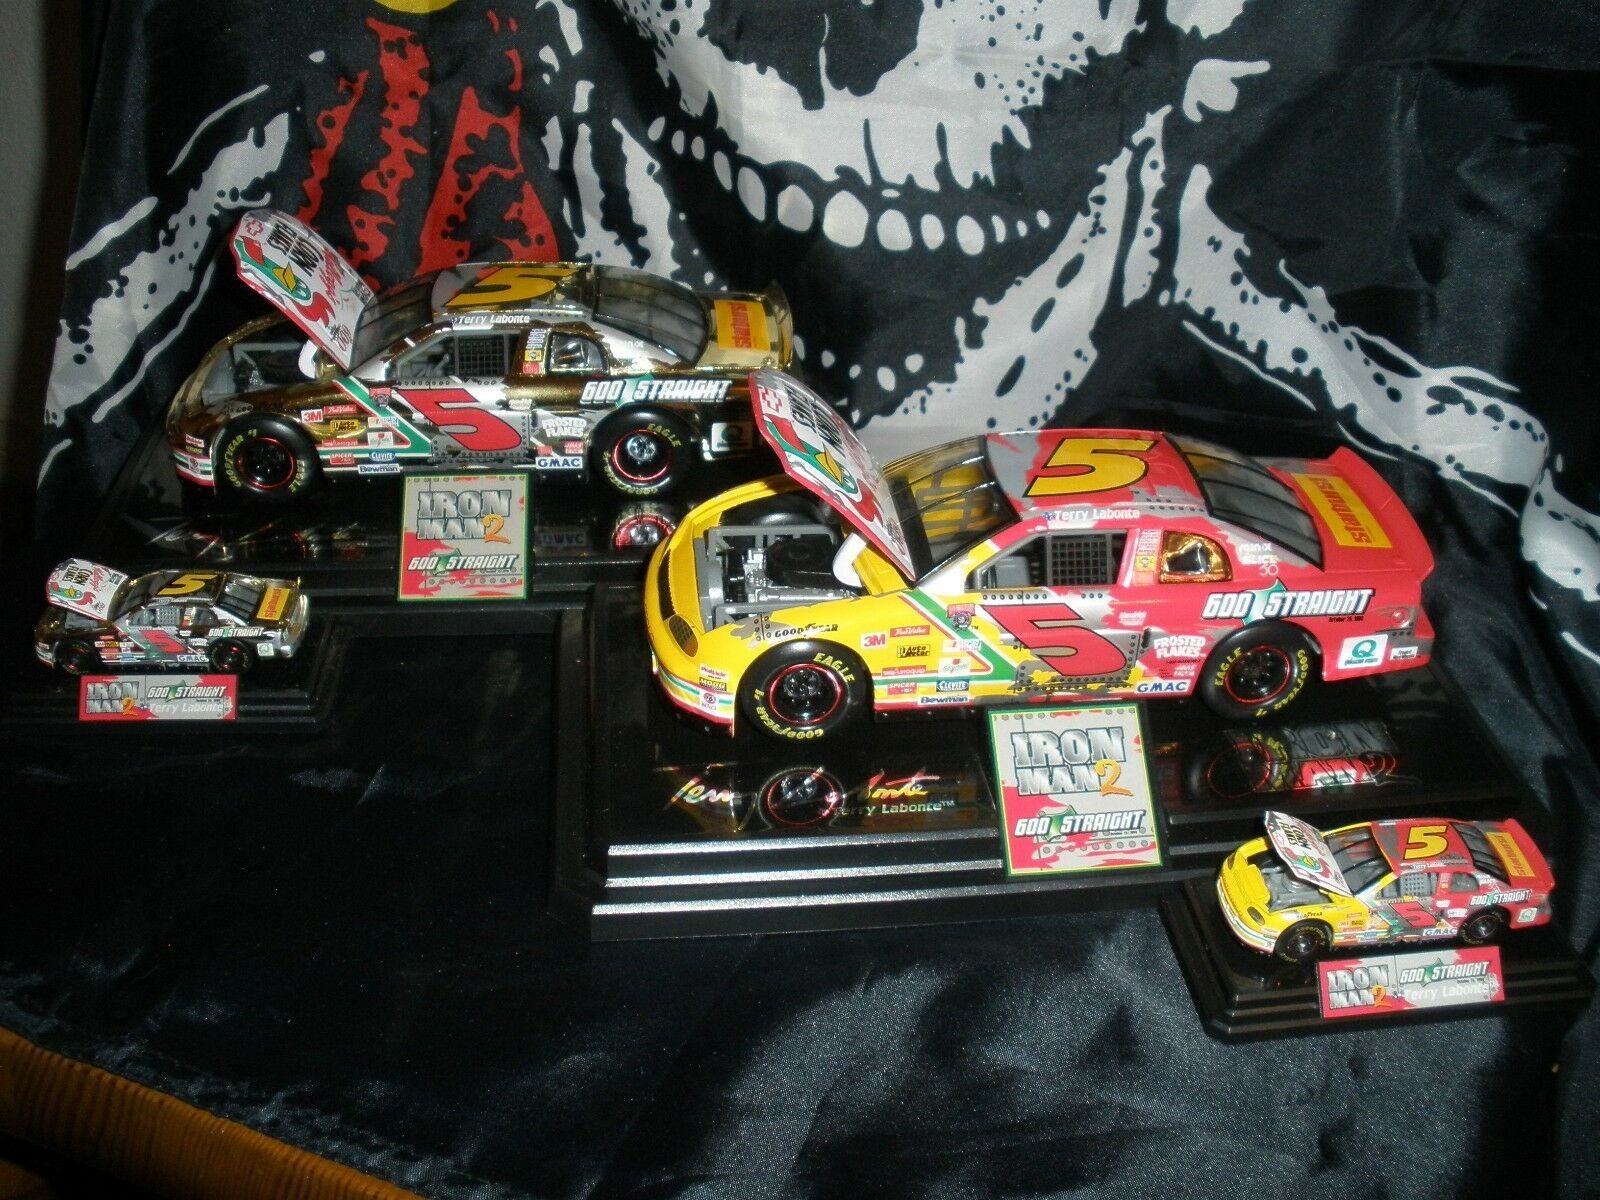 1998 Racing Champions Terry Labonte Iron Man 2 1 24 & 1 64 1 2,000 Produced